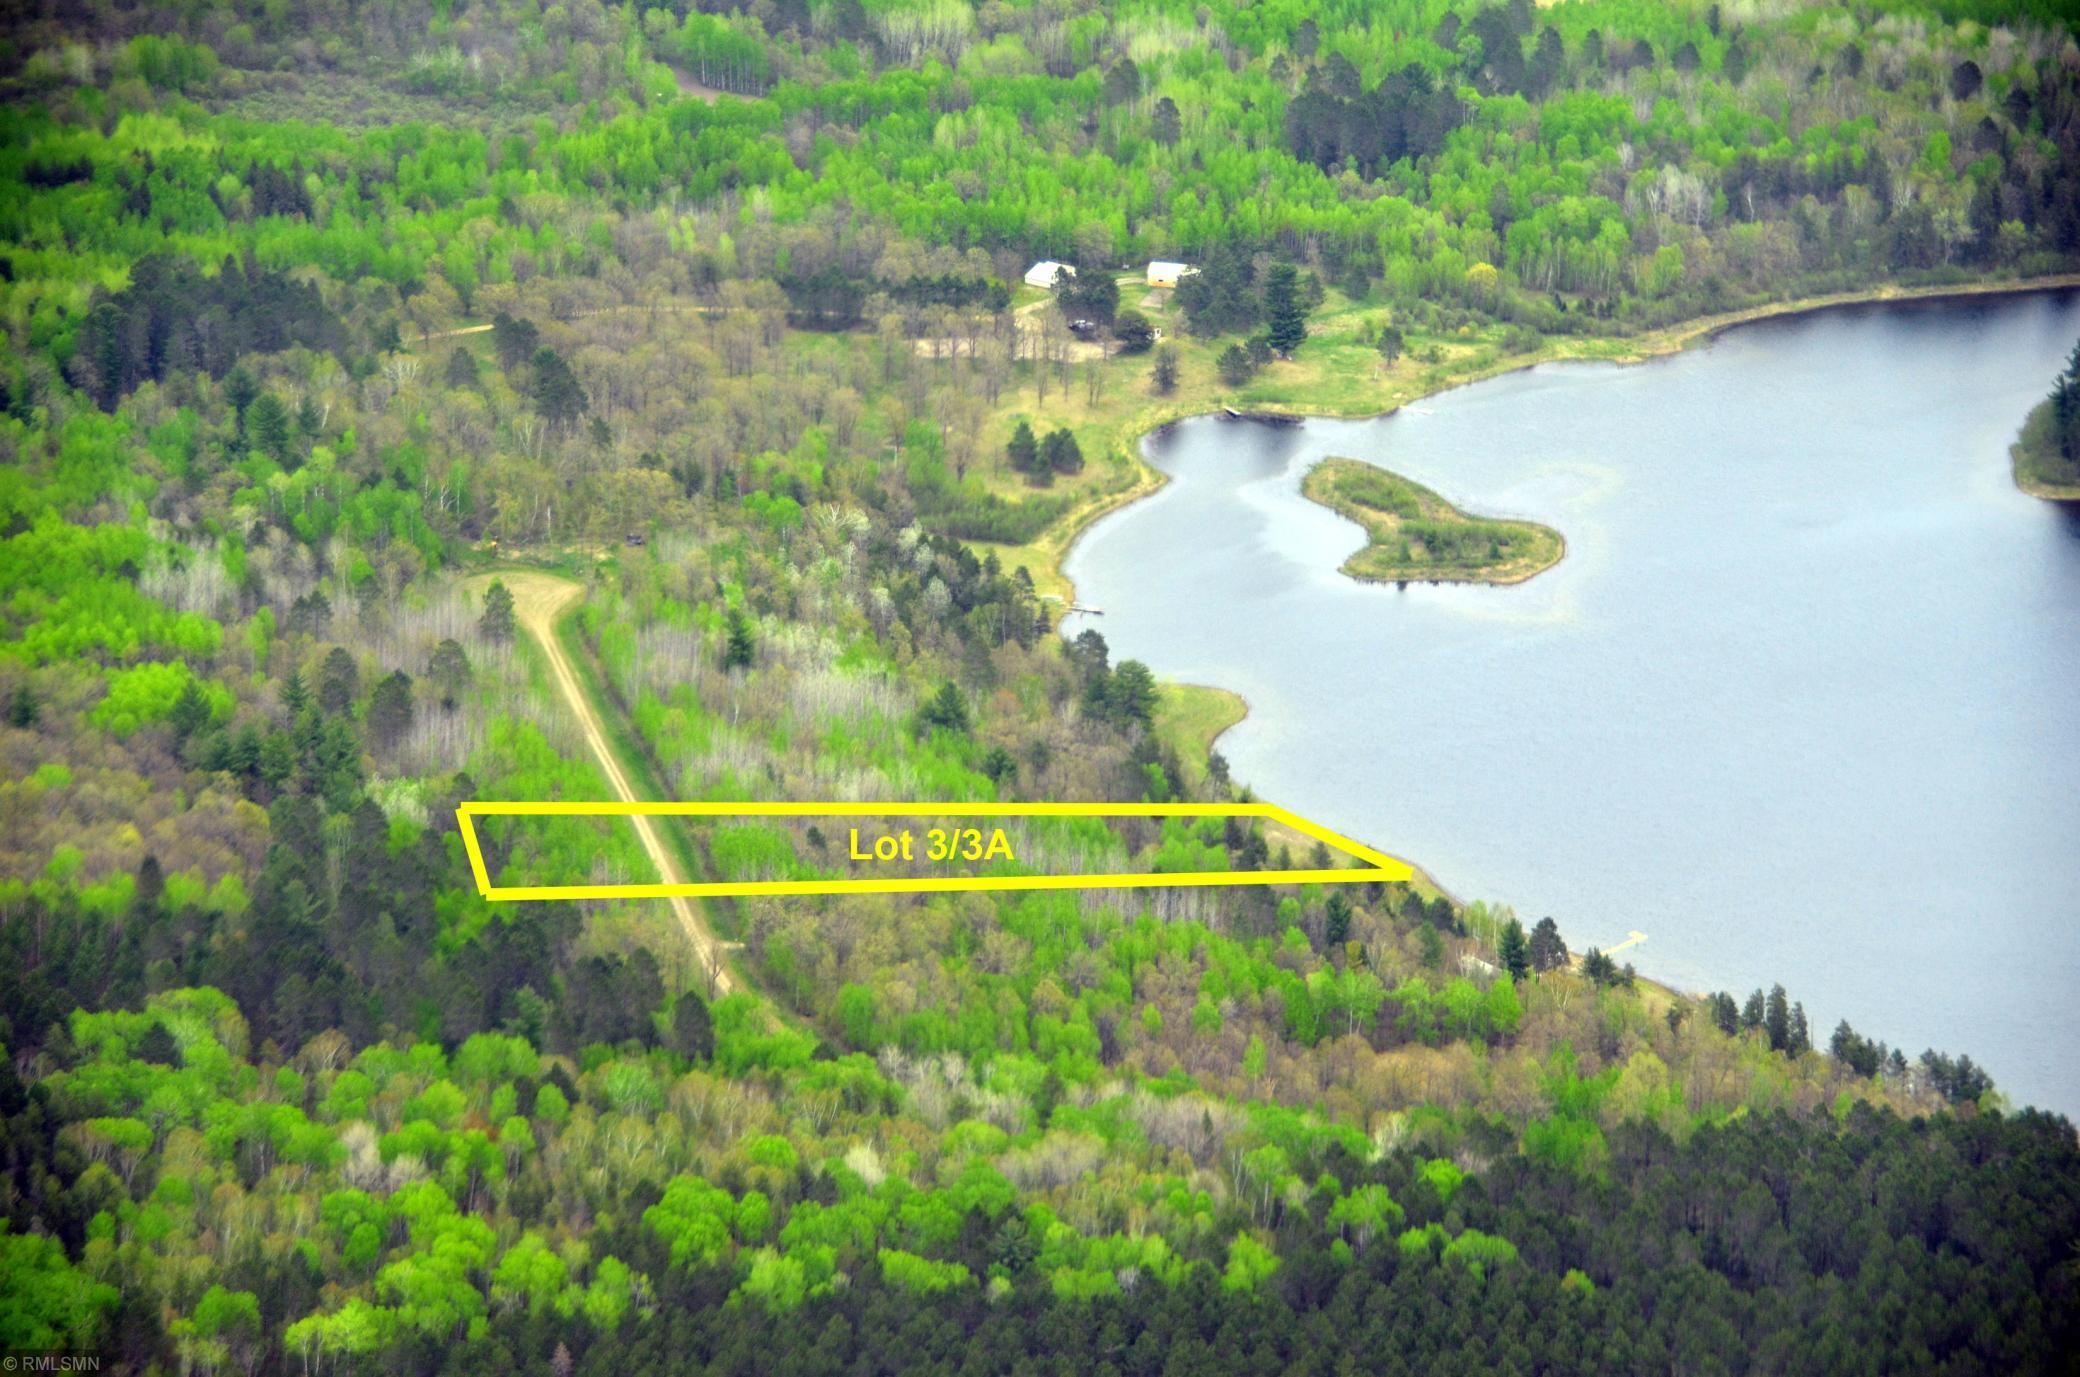 Lot 3/3A Shanty Lake Dr N Property Photo - Lake George Twp, MN real estate listing